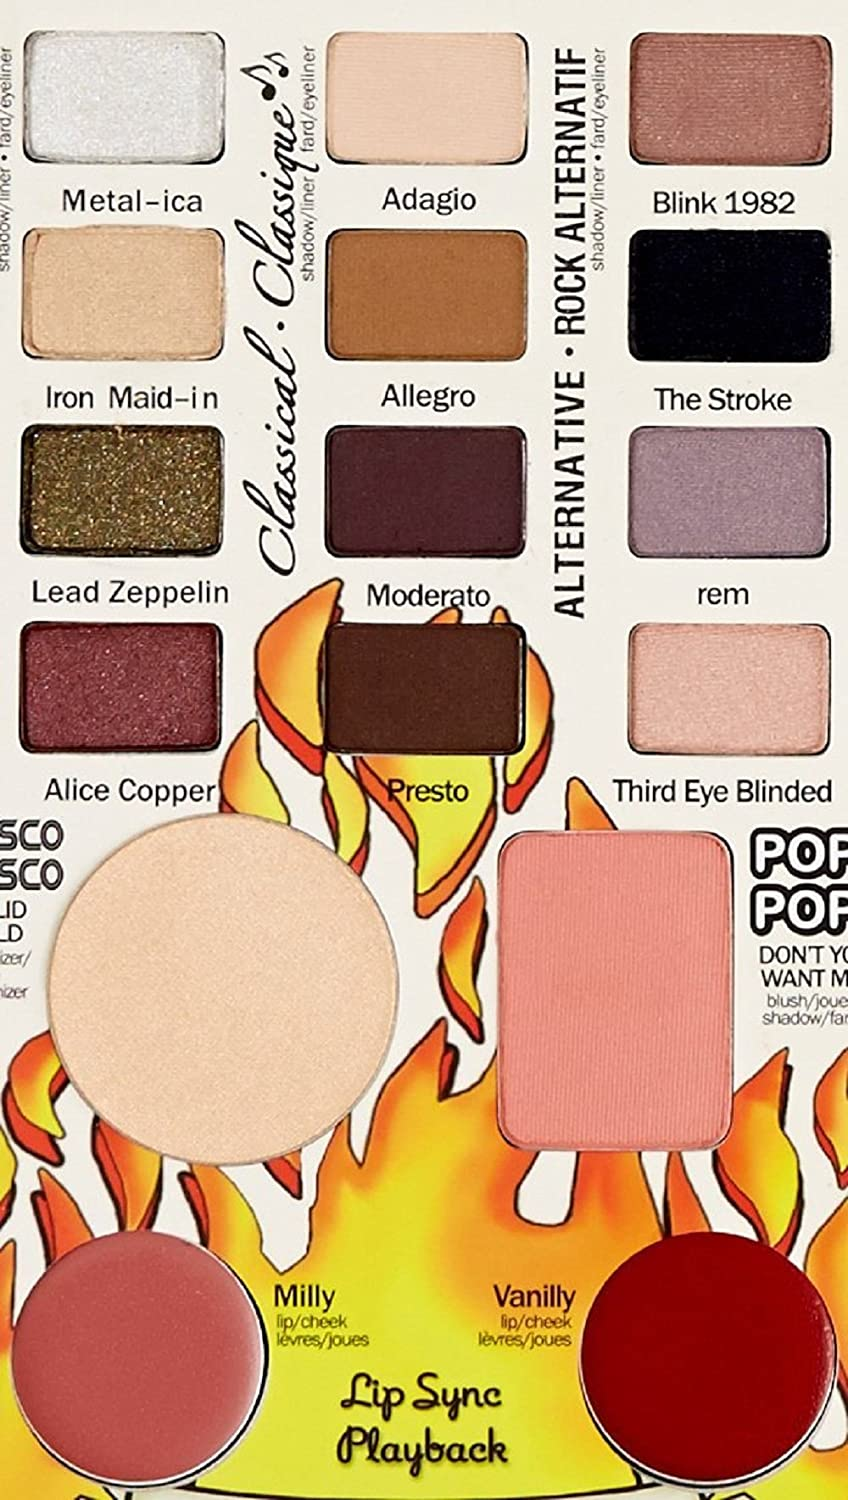 ADS Tony Stark Balm Jovi Rockstar Face Palette Includes 12 Eyeshadow, 1 Blusher, 1 Compact, 2 Lipstick